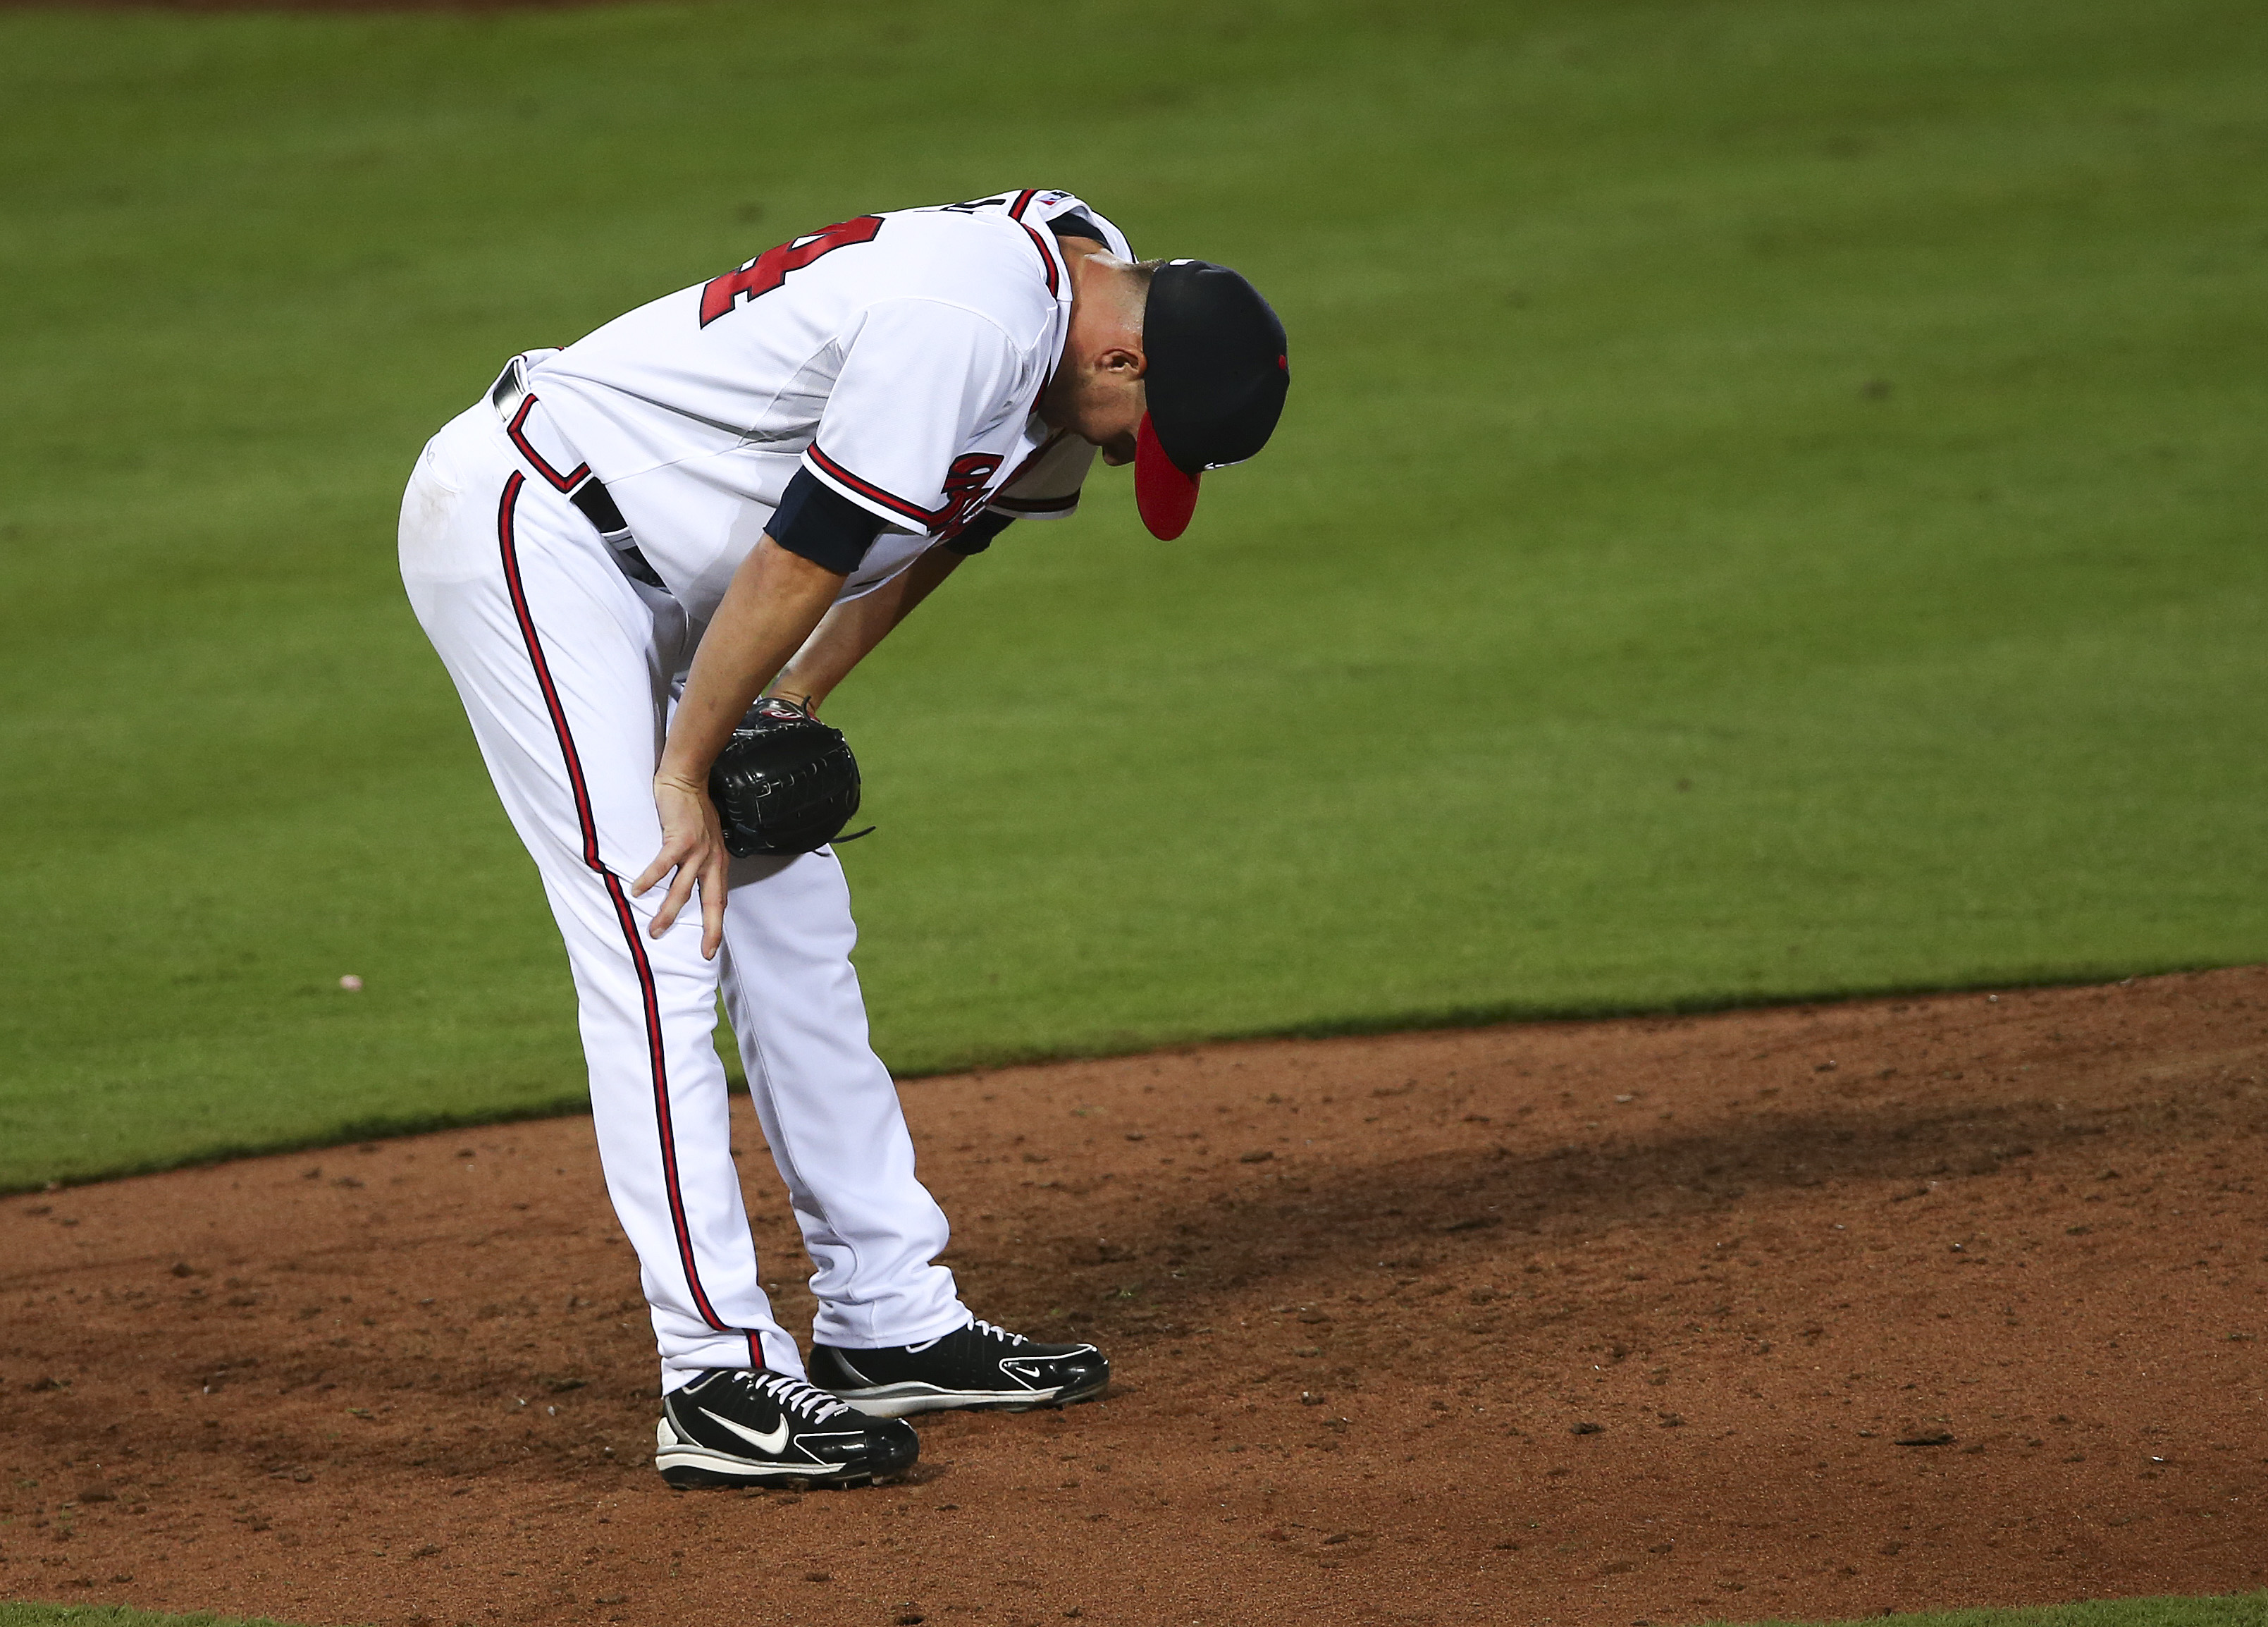 Atlanta Braves relief pitcher Ryan Kelly (64) reacts after giving up a three-run home run to Miami Marlins' Justin Bour in the seventh inning of a baseball game Tuesday, Sept. 1, 2015, in Atlanta. (AP Photo/John Bazemore)